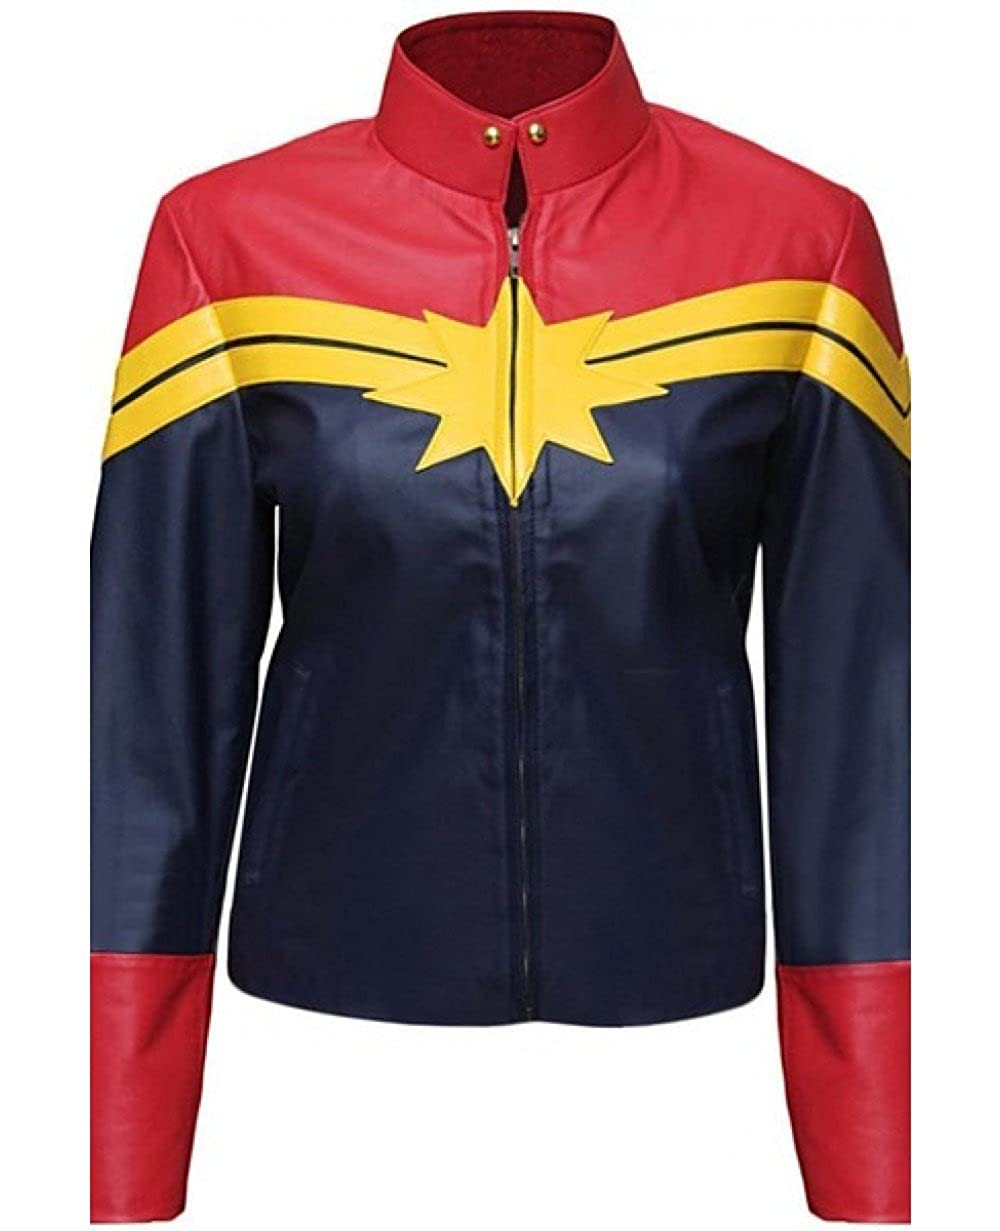 Captain Marvel Carol Danvers Red and Blue Women's Leather Jacket